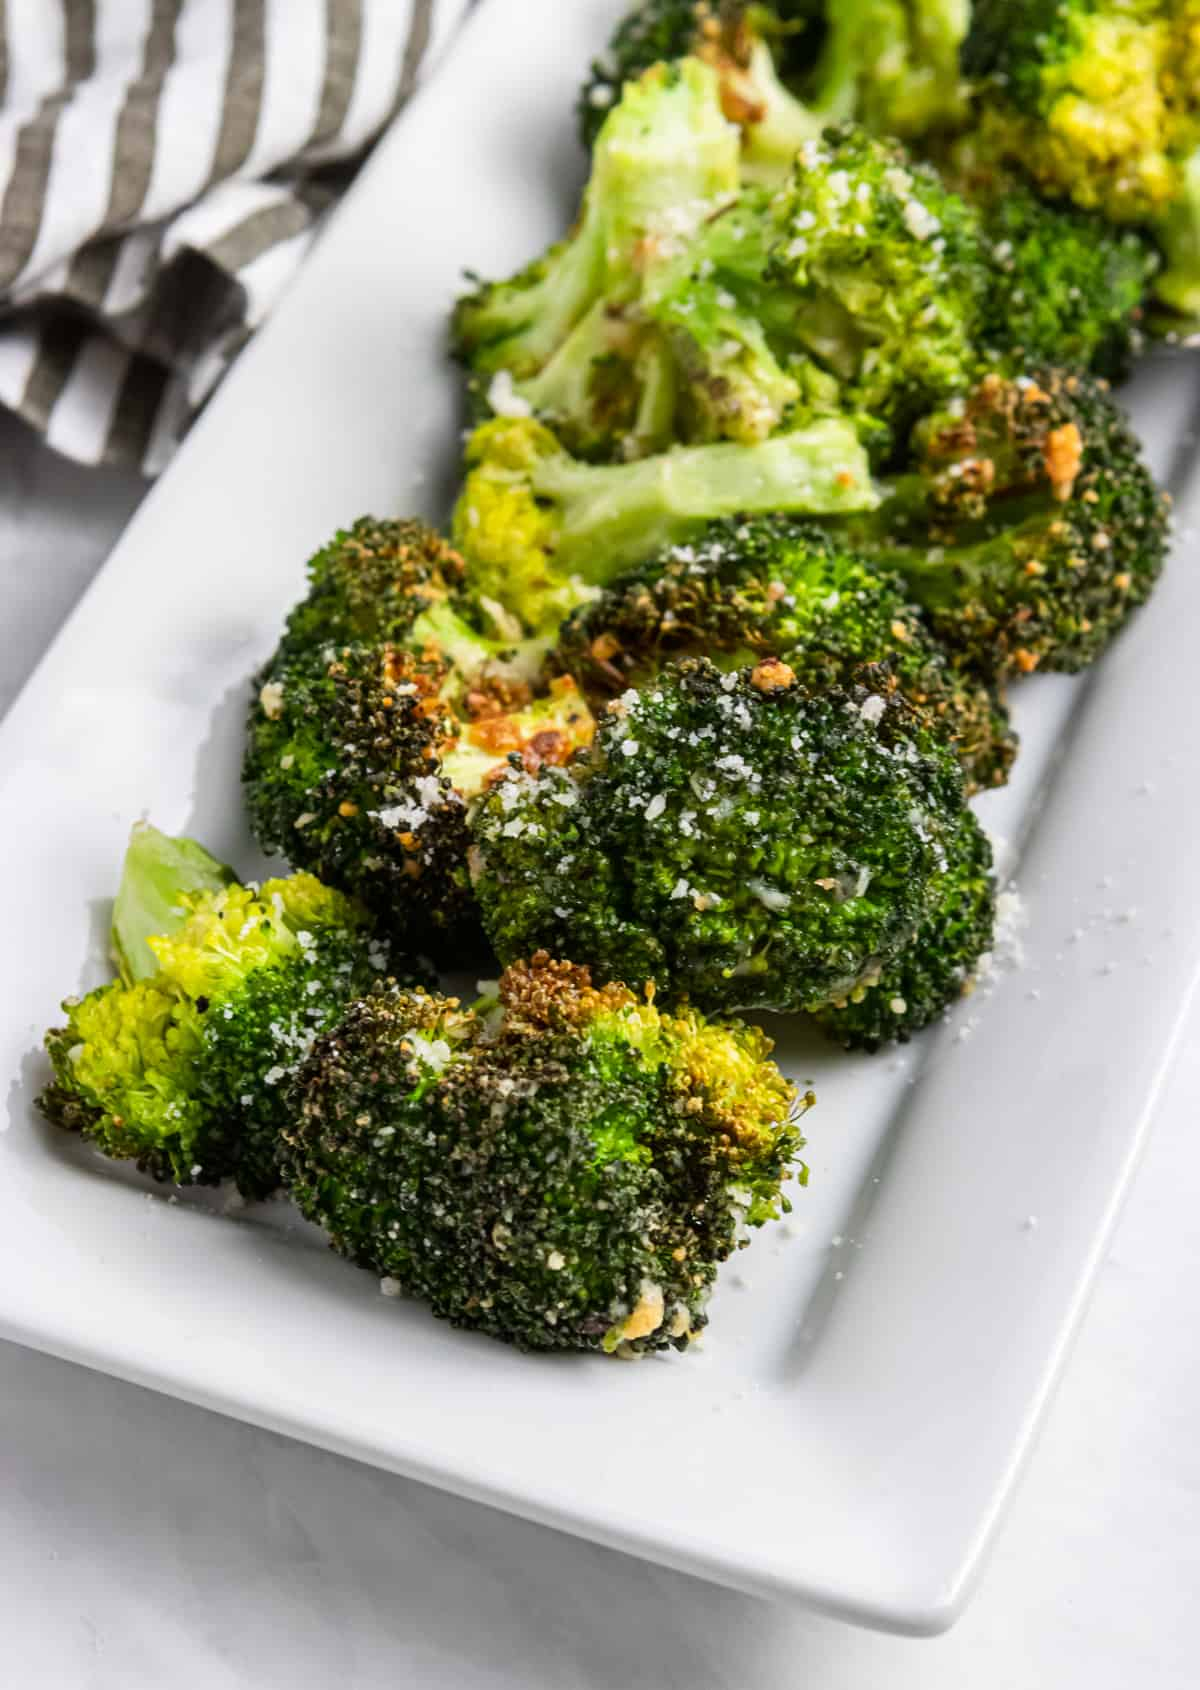 Plate of air fried broccoli with parmesan.